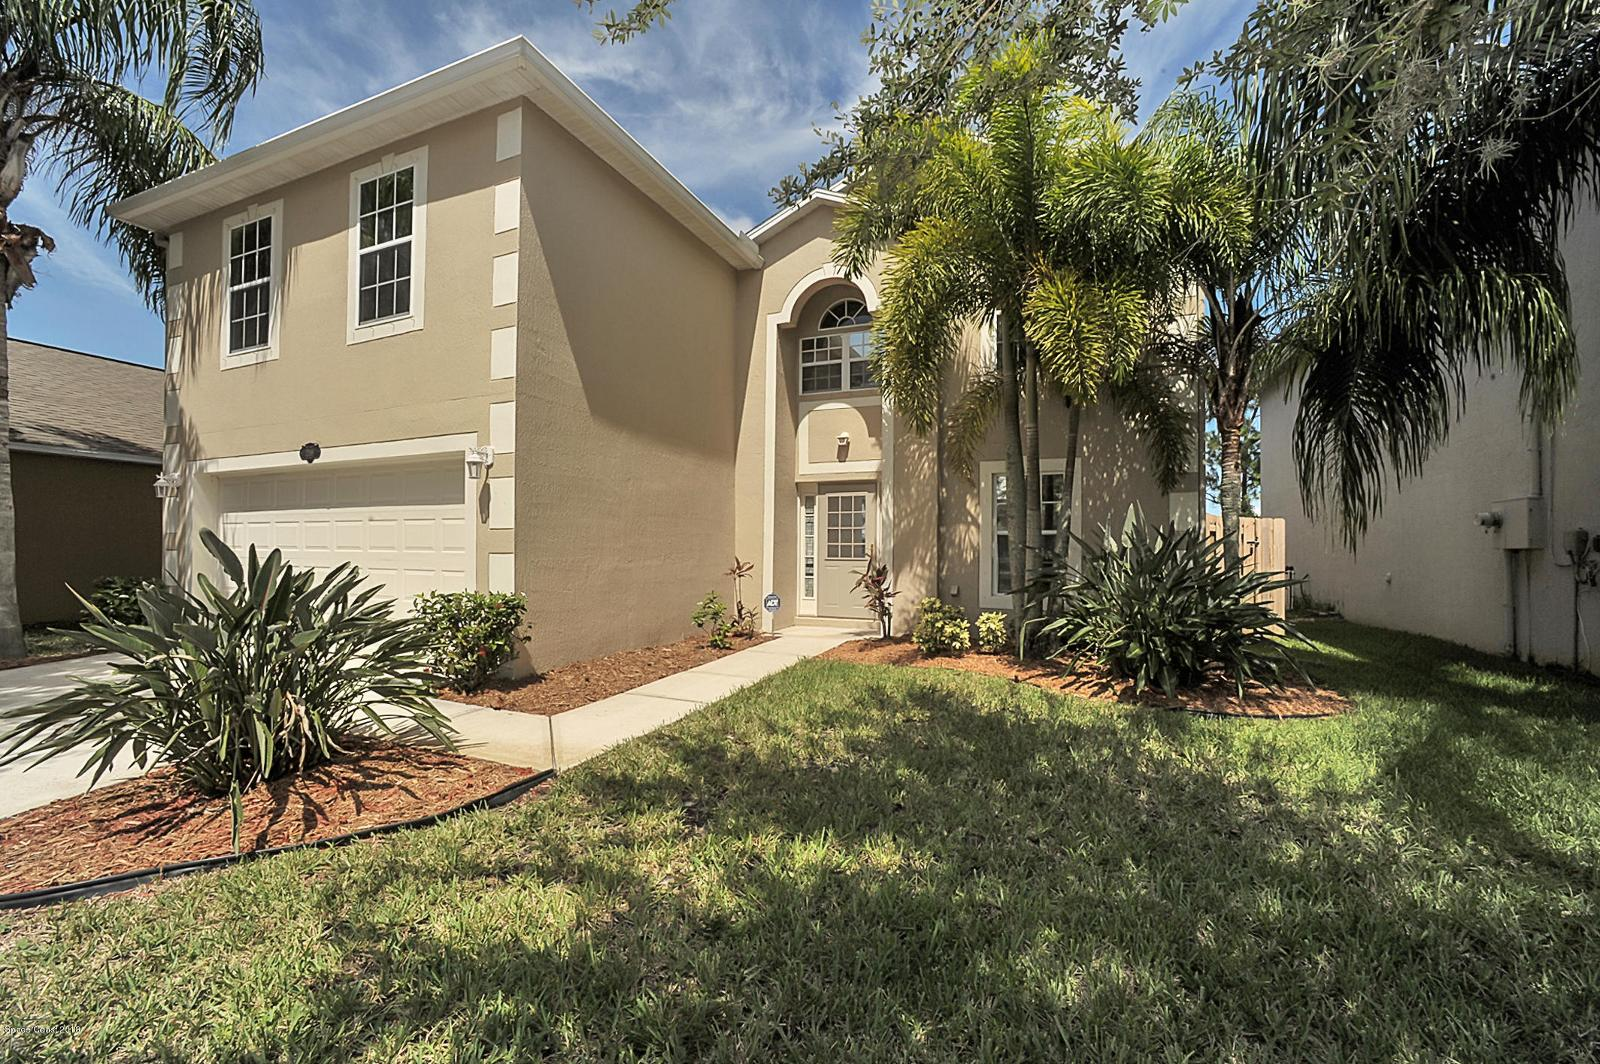 Local Real Estate: Homes for Sale — Eastwood Heritage Oaks, FL ...